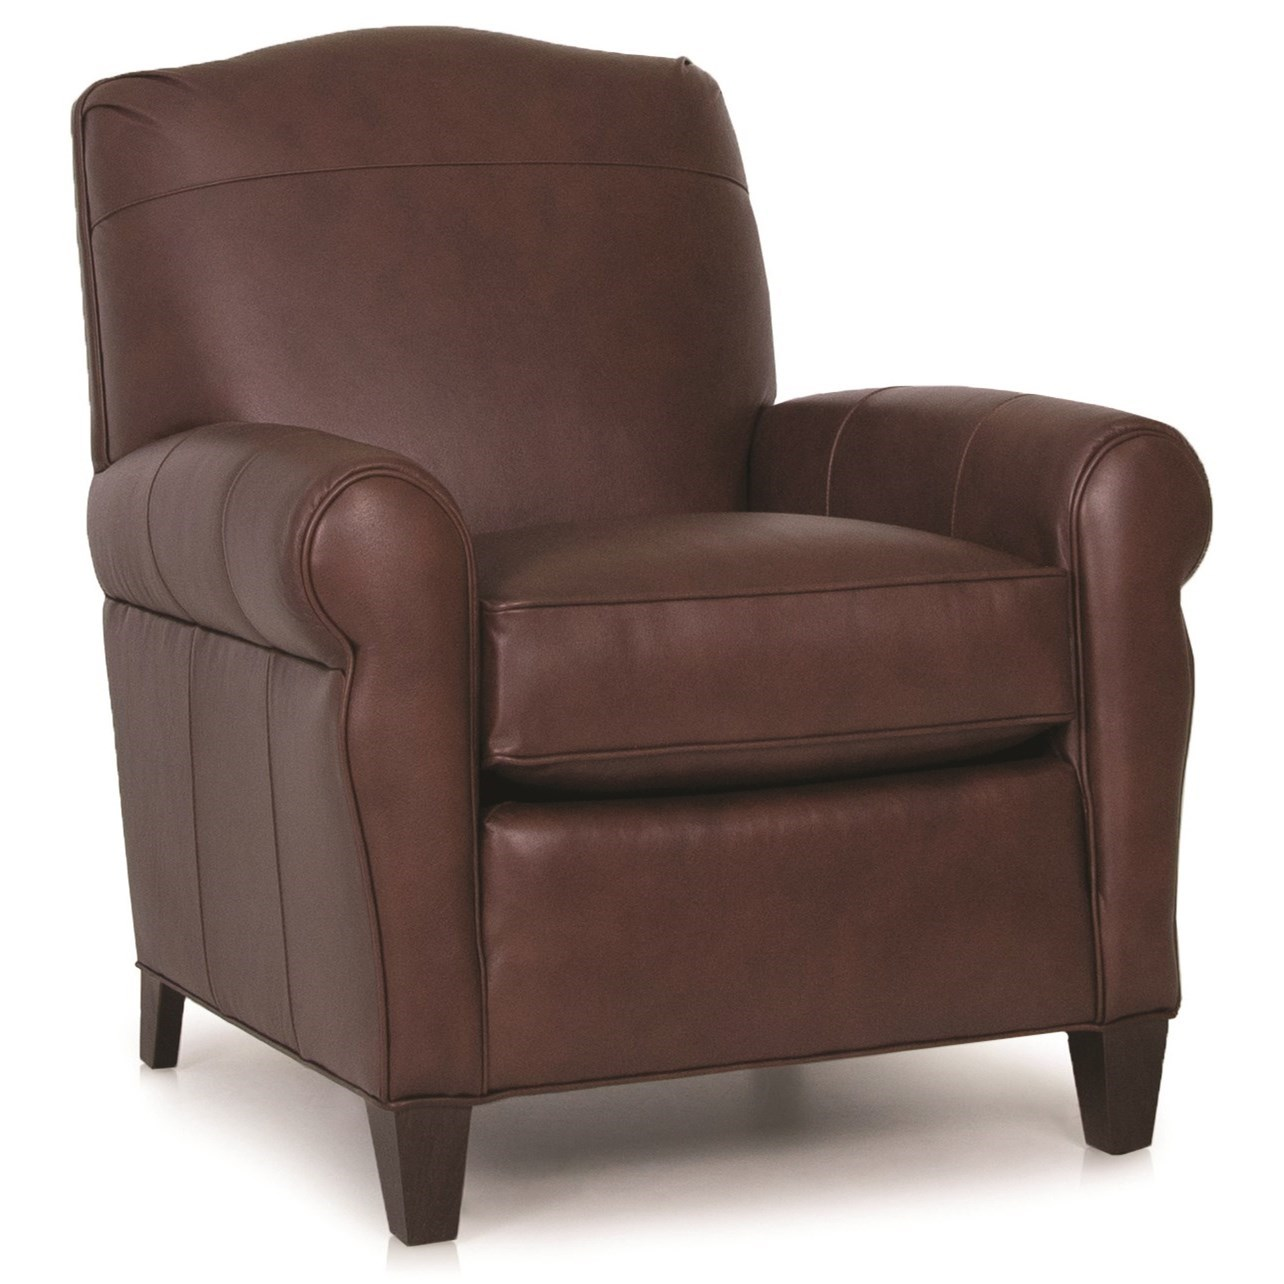 933 Upholstered Chair by Smith Brothers at Pilgrim Furniture City